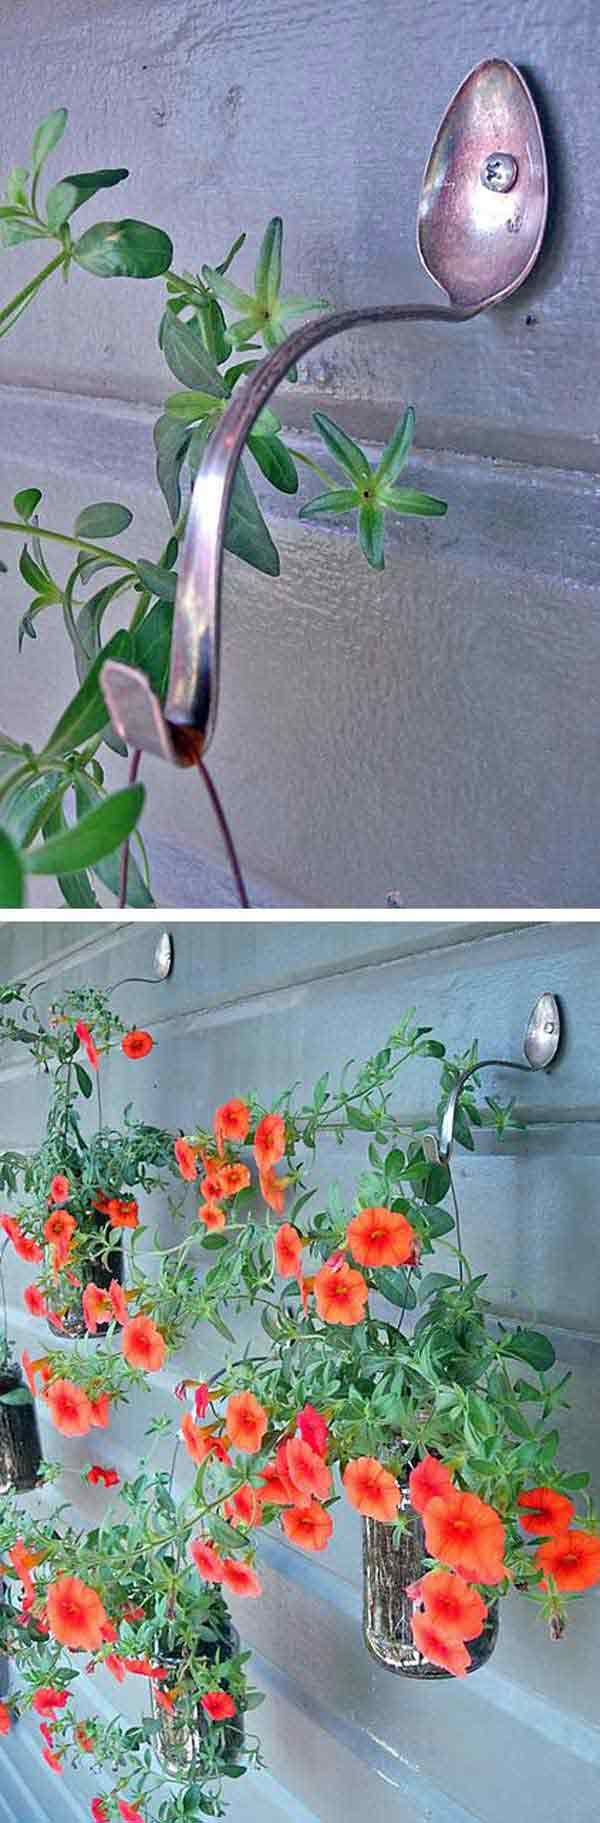 This idea could work in our balcon